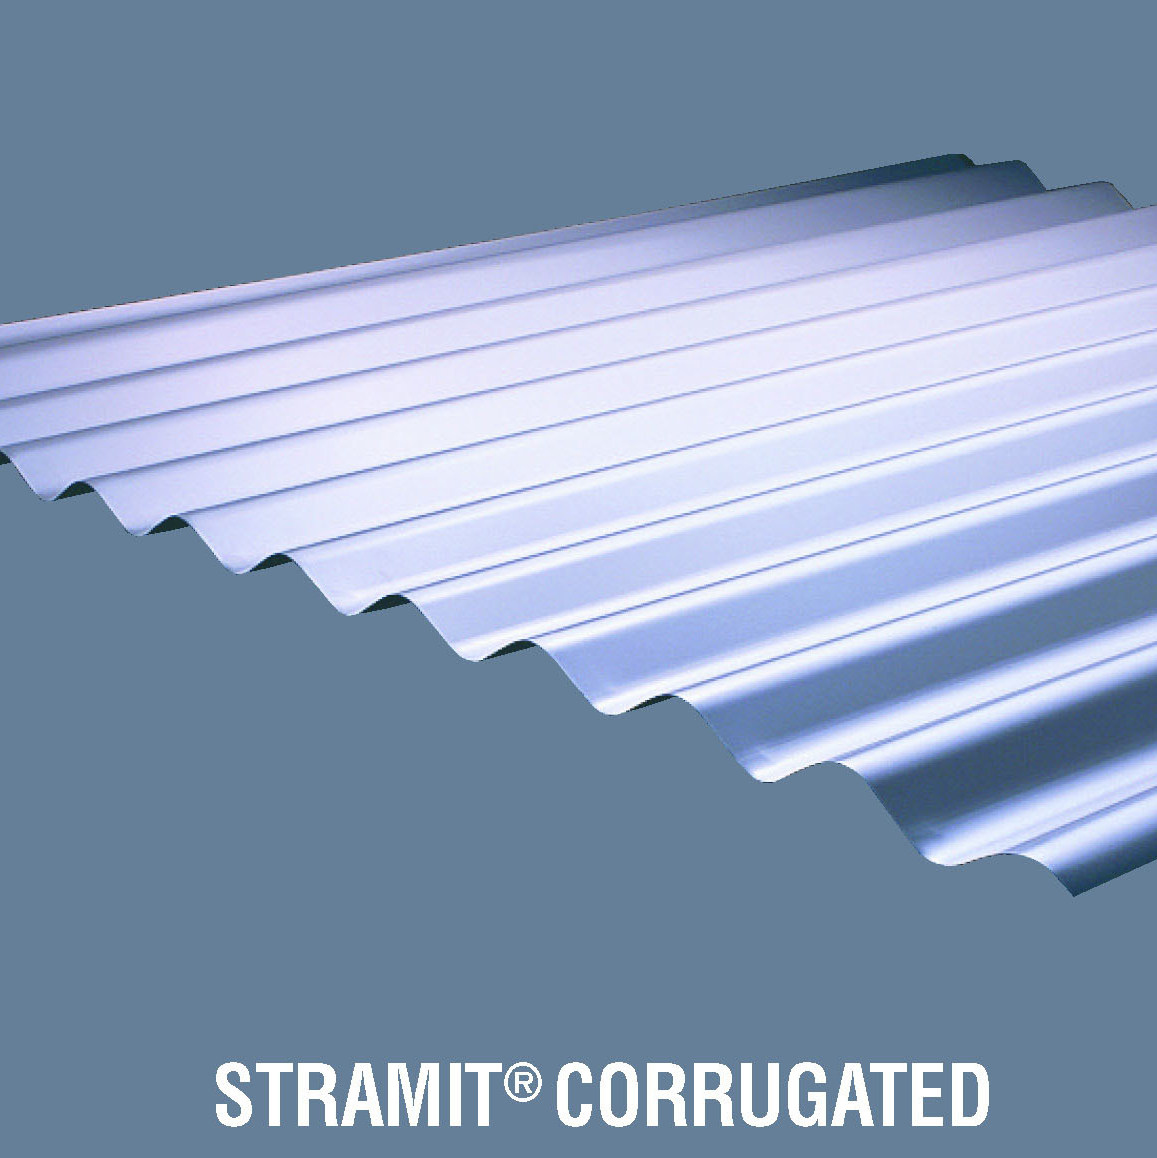 Stramit Corrugated